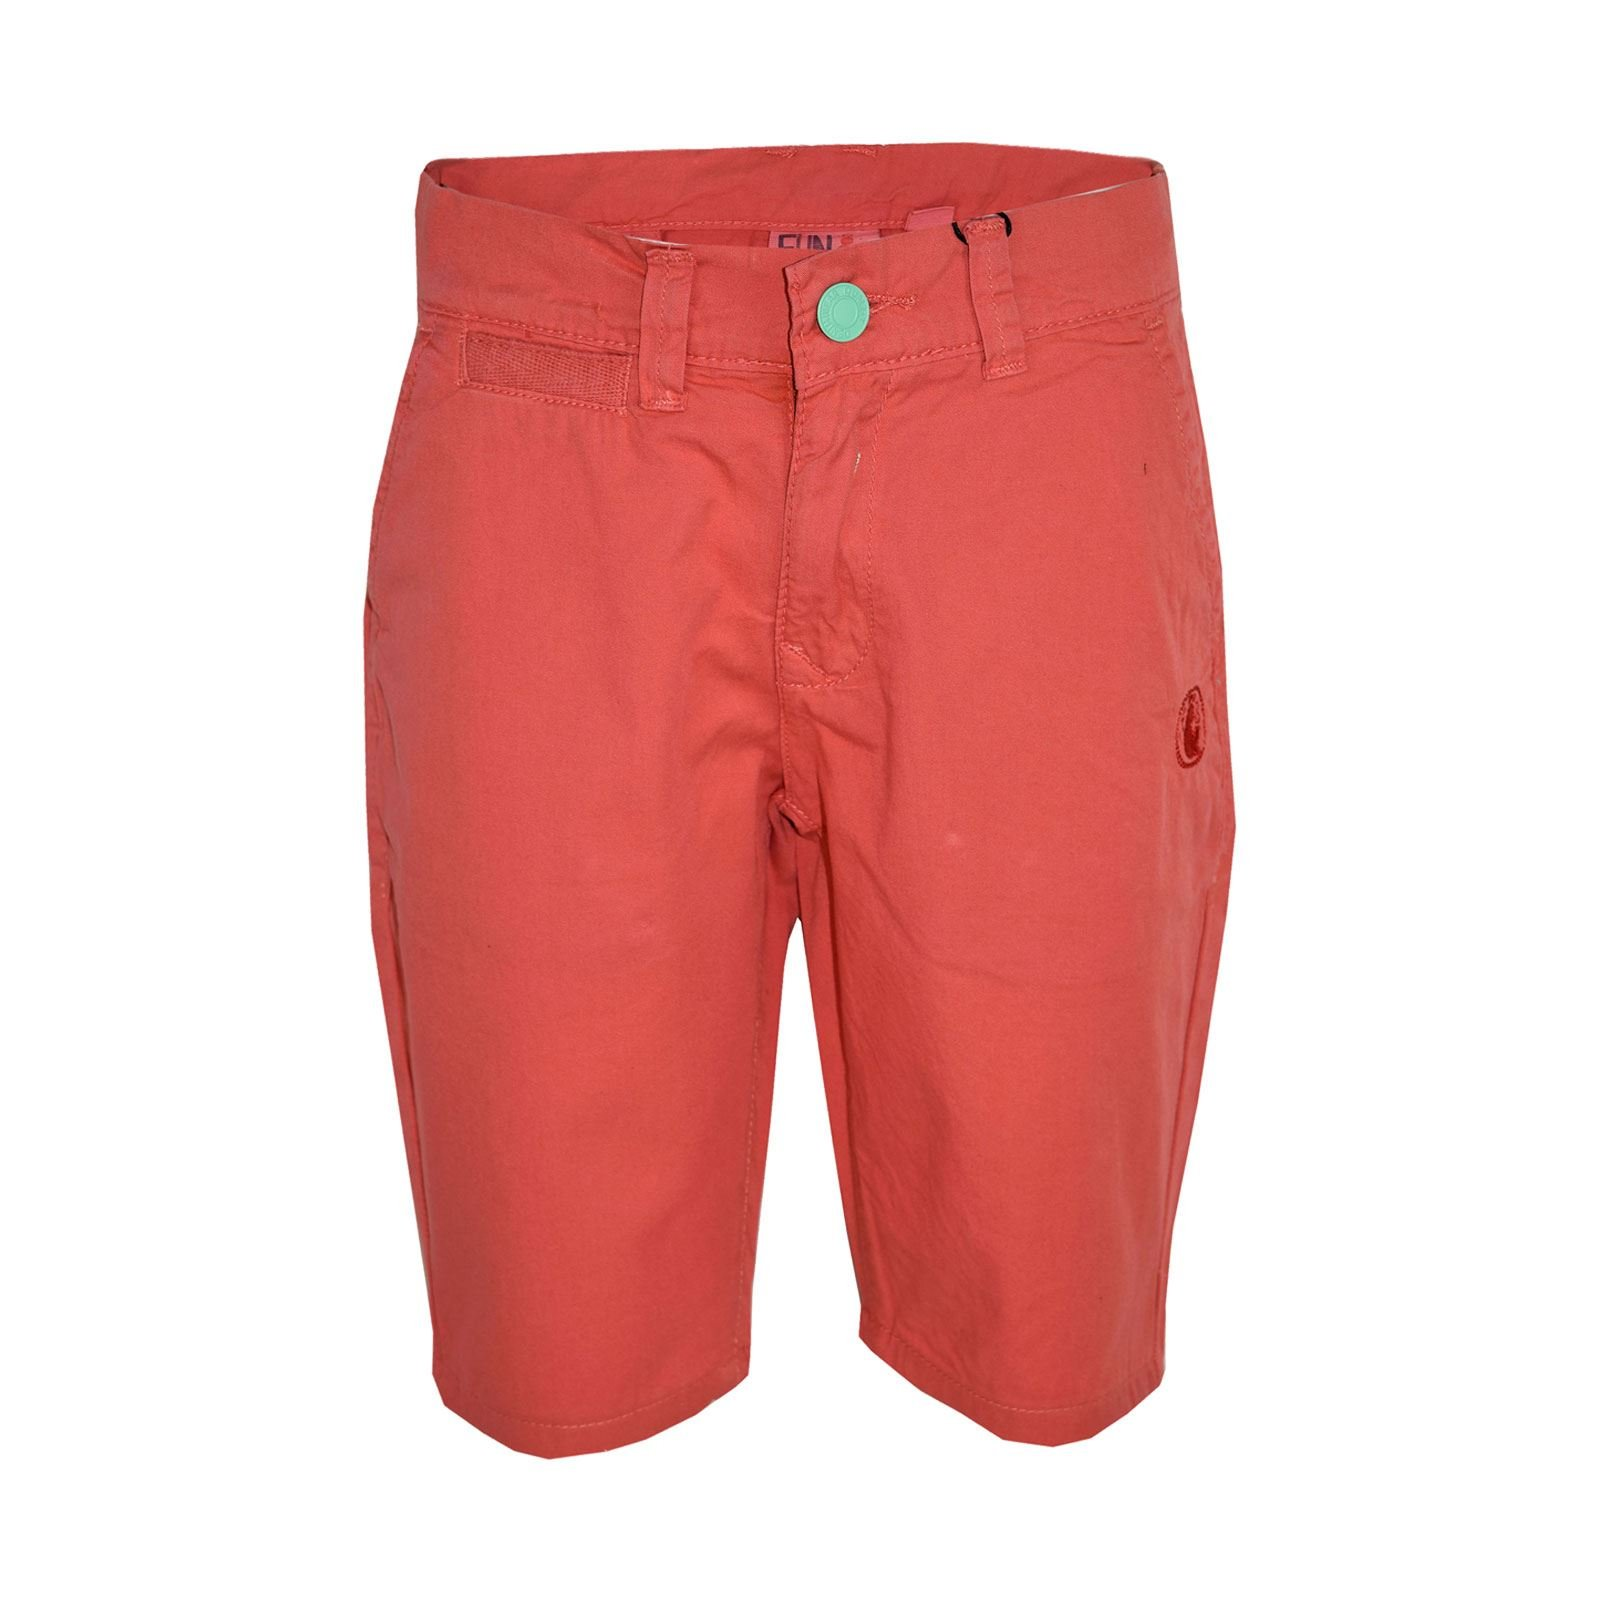 Boys Short Kids Orange Chino Shorts Summer Knee Length Half Pant New Age 2-13 Yr